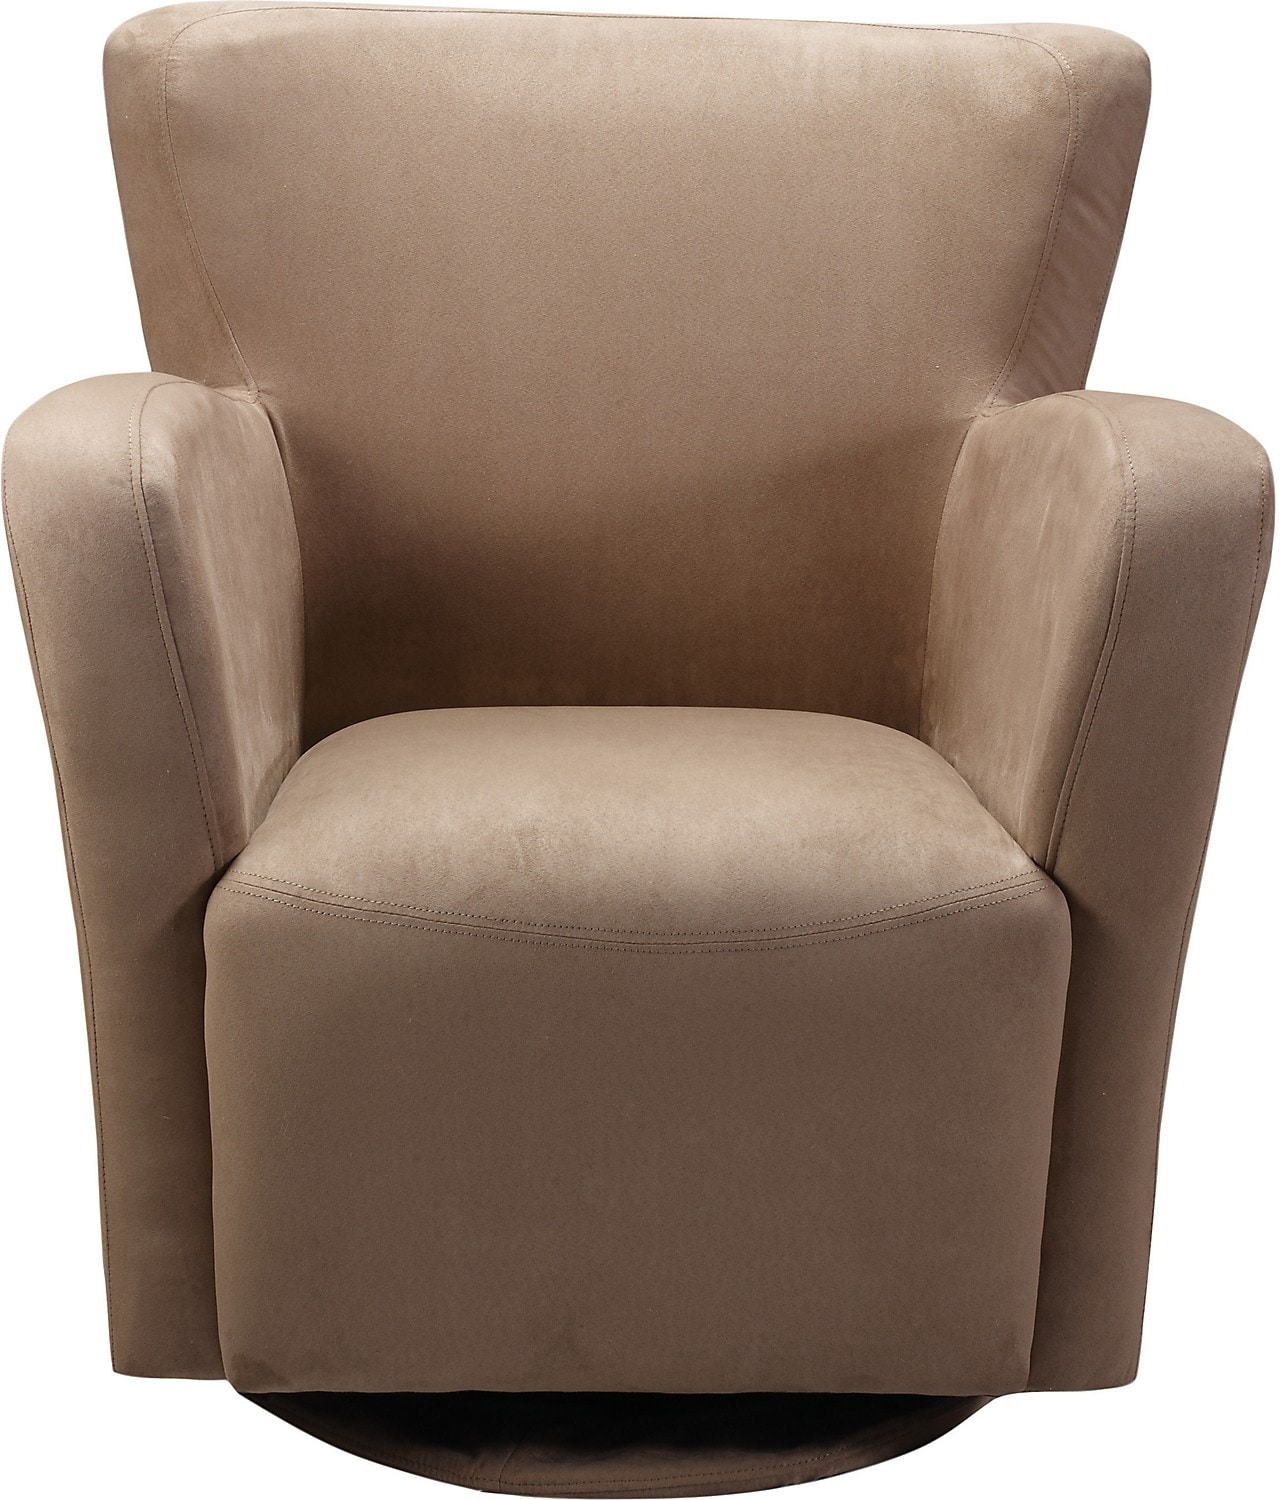 Zello Mocha Microfibre Swivel Chair